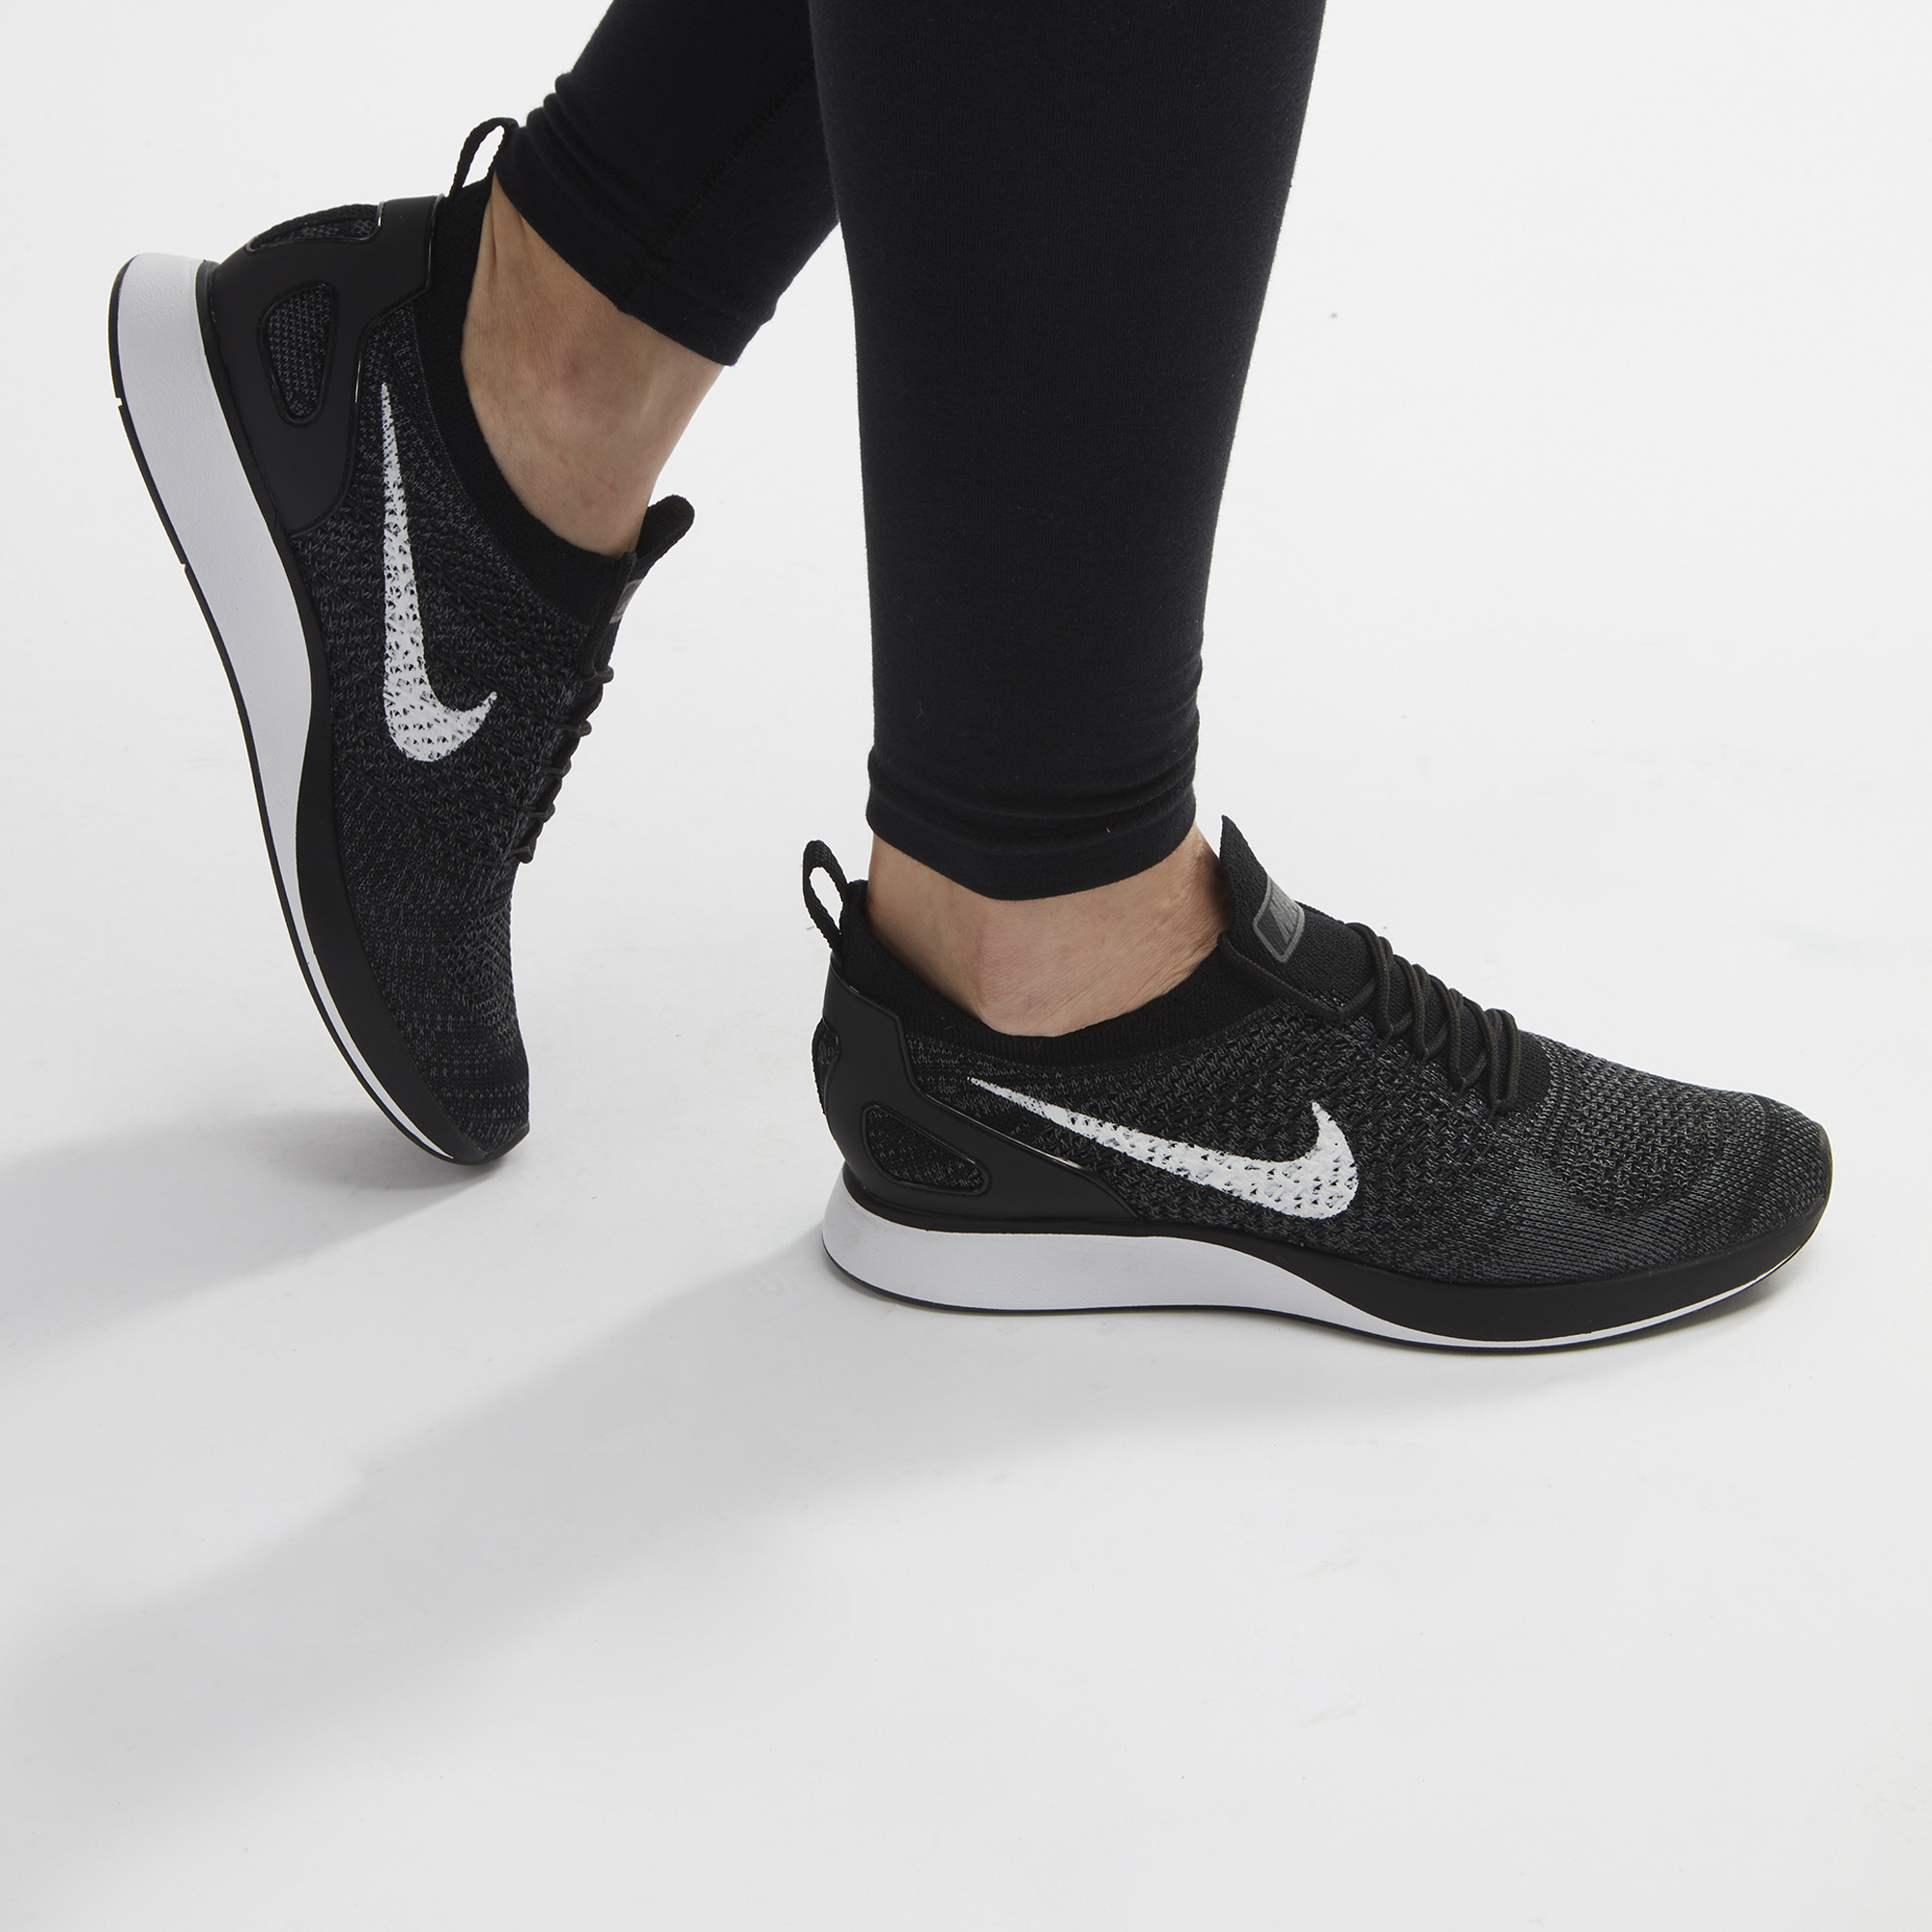 cheap for discount 8c56c 00c4d Shop Black Nike Air Zoom Mariah Flyknit Racer Running Shoe for Womens by  Nike   SSS